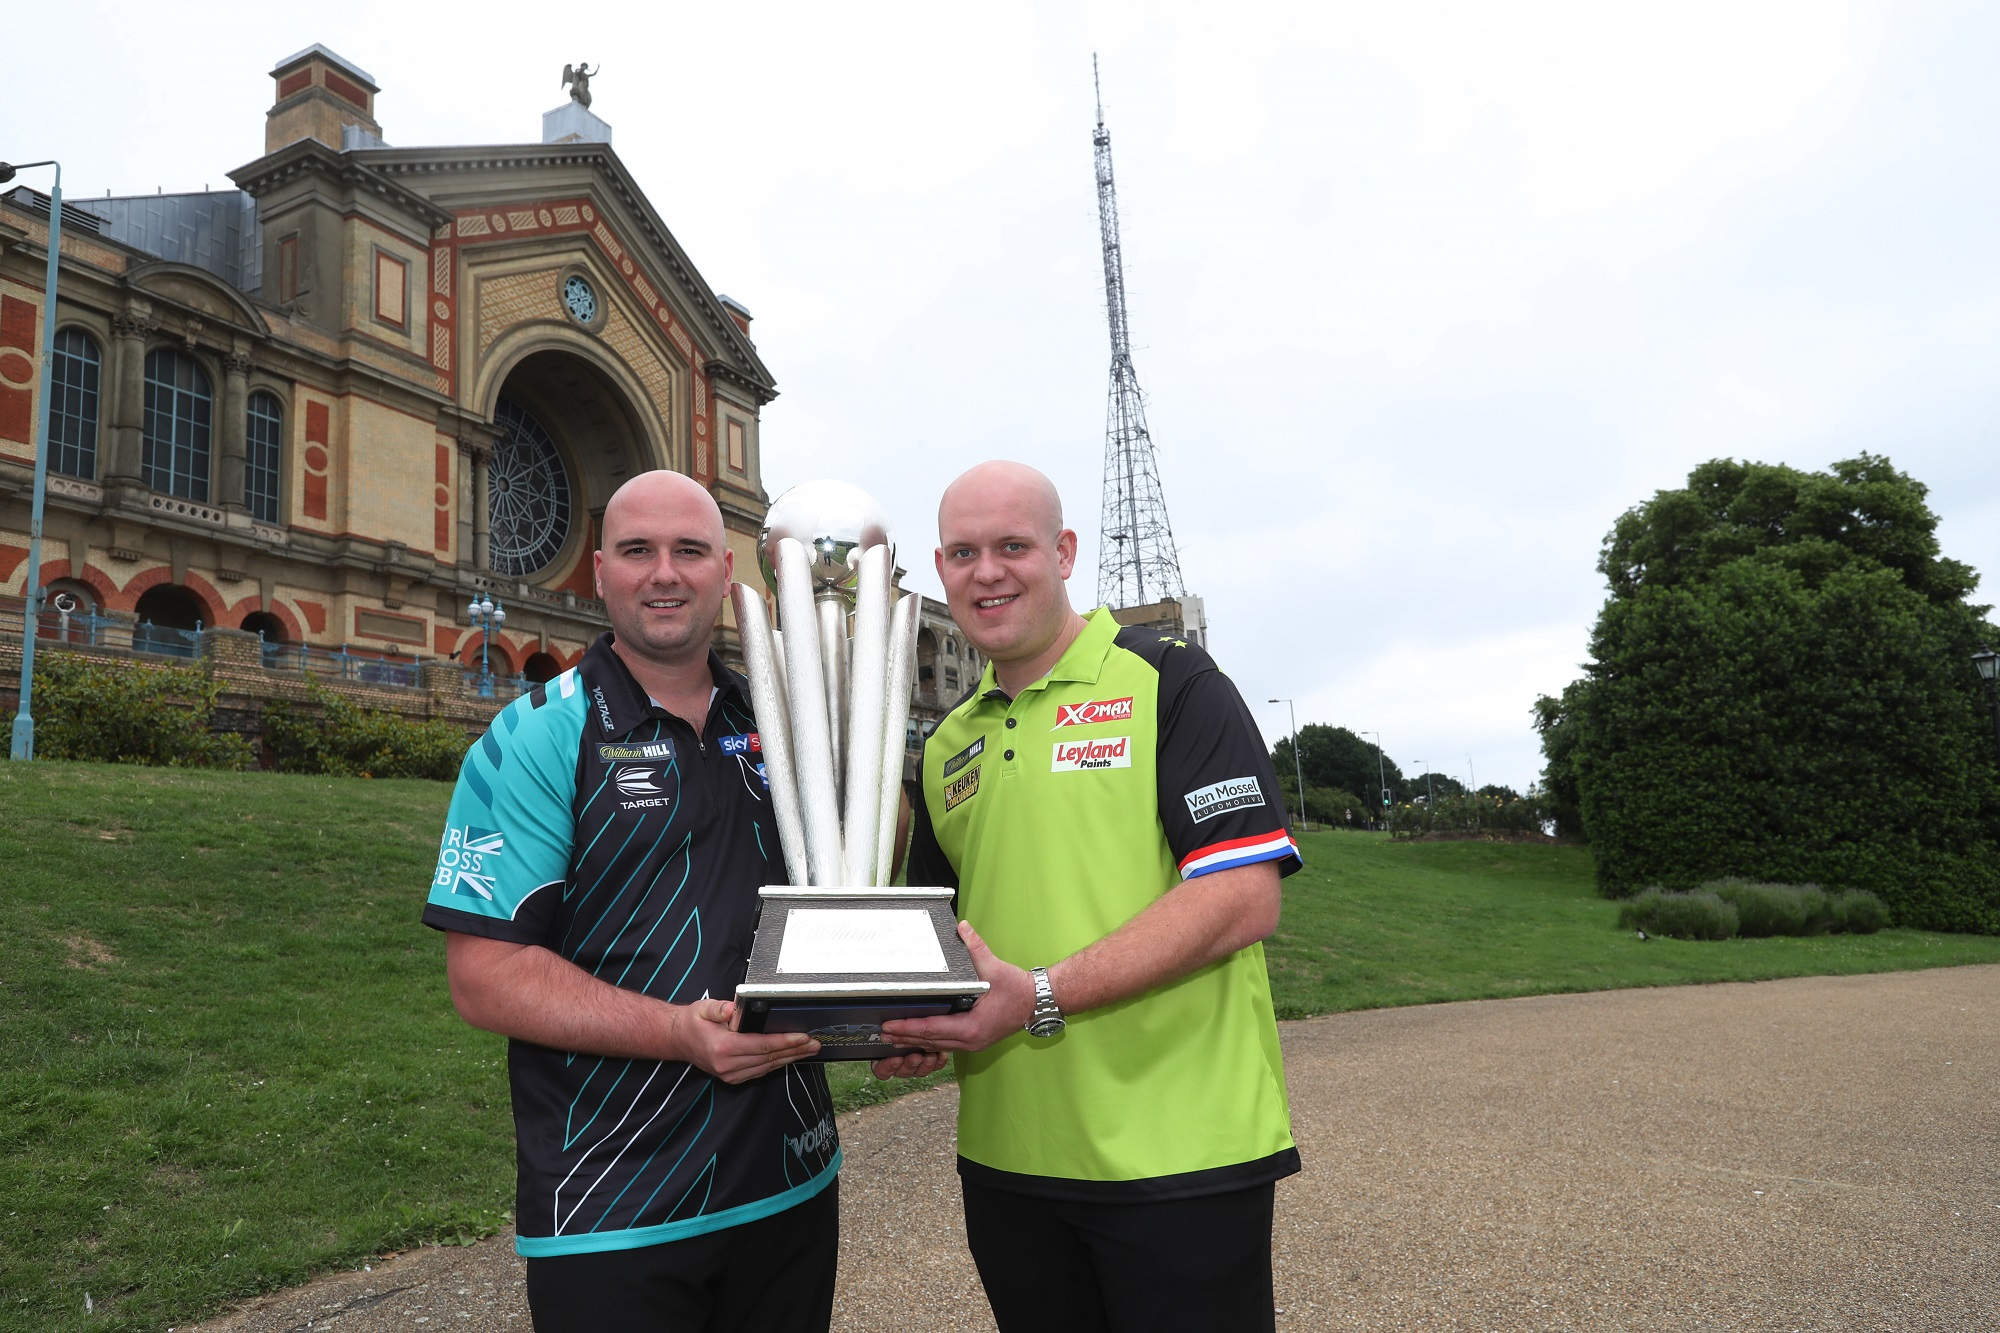 WILLIAM HILL WORLD DARTS CHAMPIONSHIP 2019 ANNOUNCEMENT ALEXANDRA PALACE ,LONDON PIC;LAWRENCE LUSTIG WORLD CHAMPION ROB CROSS AND WORLD NUMBER 1 MICHAEL VAN GERWEN AT LONDONS ALEXANDRA PALACE AS THE PDC ANNOUNCE THE EXPANSION OF THE WORLD DARTS CHAMPIONSHIPS TO 96 PLAYERS.